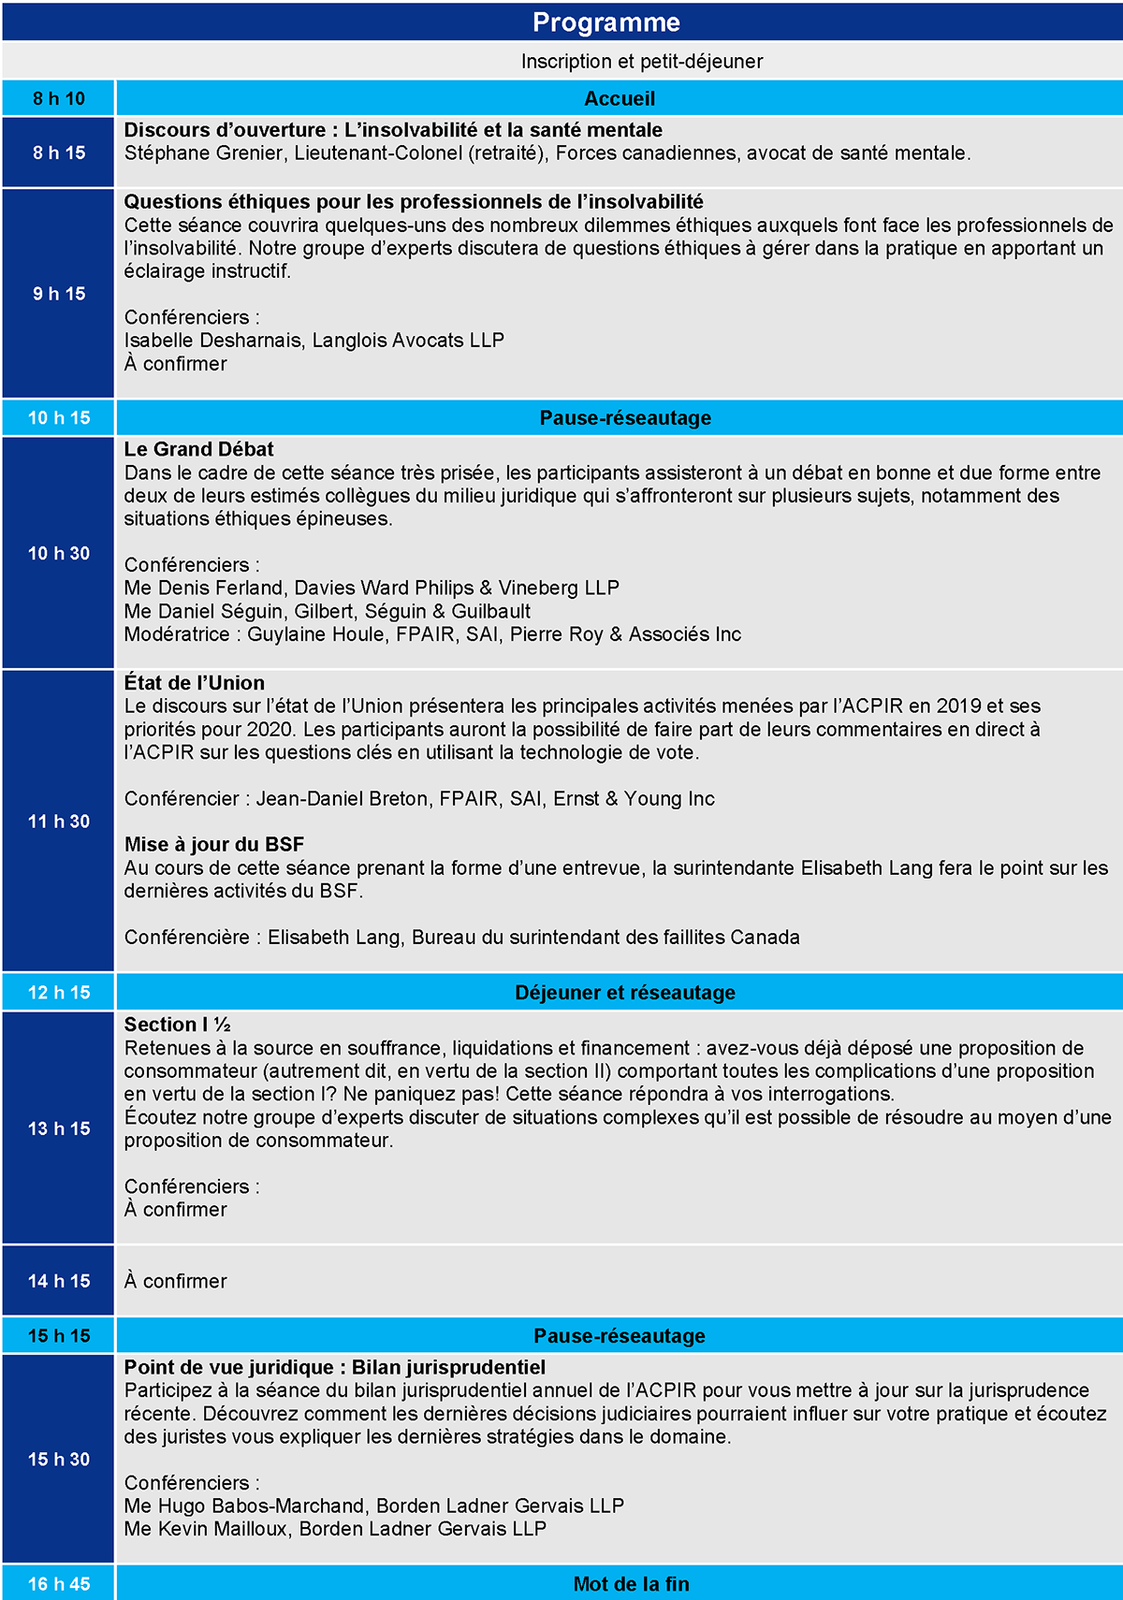 Forums_2020/Montreal-Agenda-2020.png